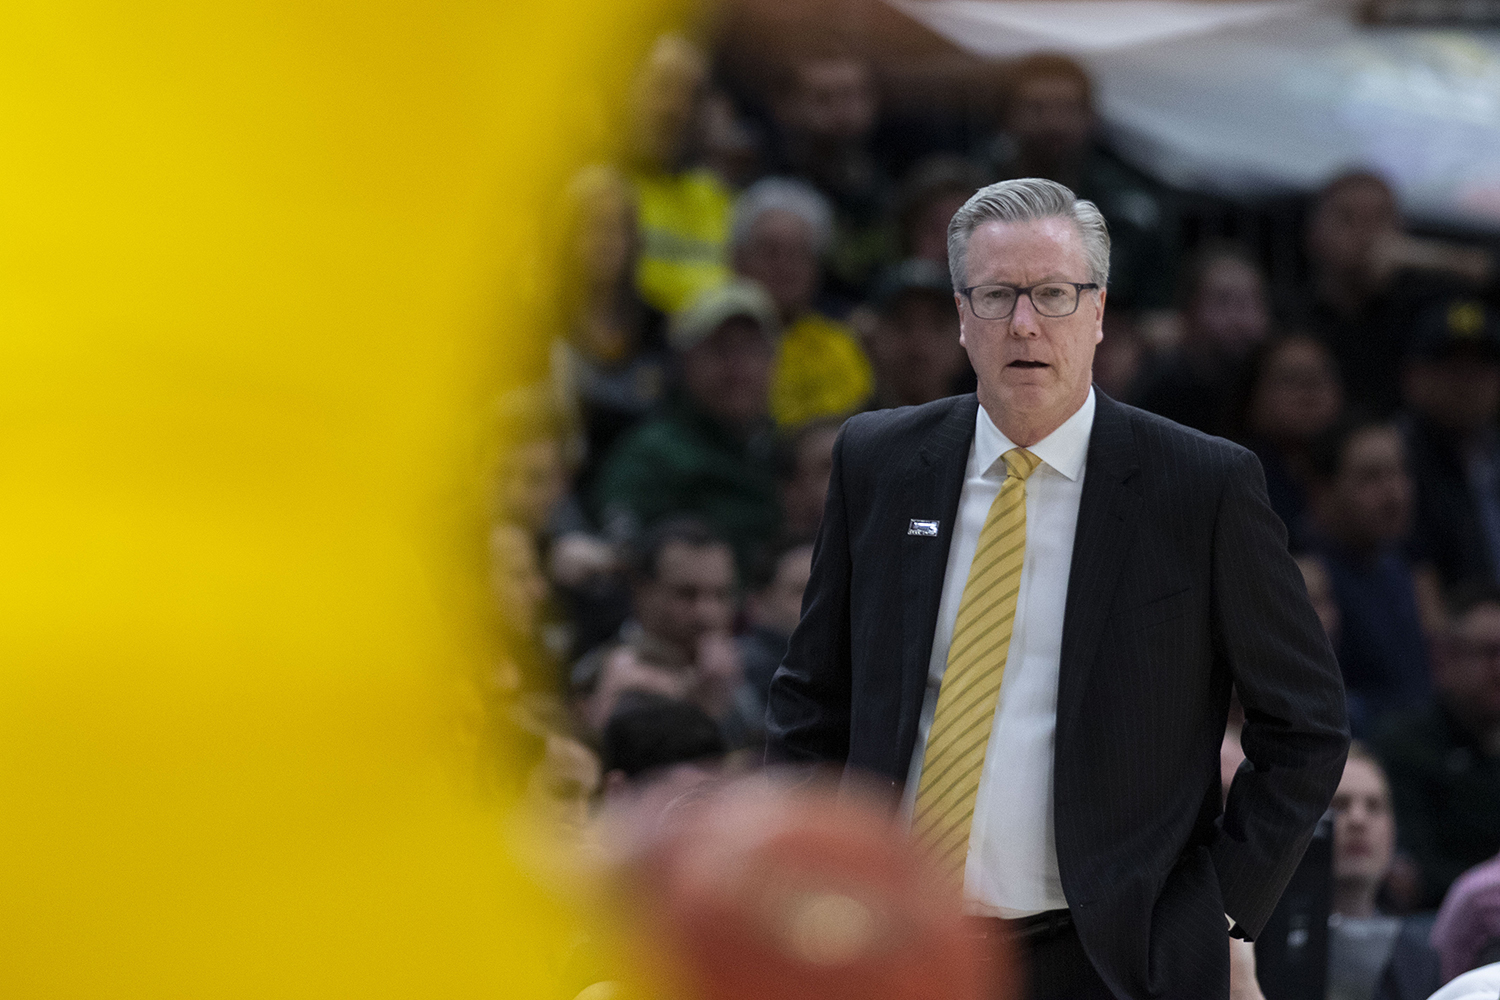 Iowa+head+coach+Fran+McCaffery+looks+on+during+the+Iowa%2FMichigan+Big+Ten+Tournament+men%27s+basketball+game+in+the+United+Center+in+Chicago+on+Friday%2C+March+15%2C+2019.+The+Wolverines+defeated+the+Hawkeyes%2C+74-53.+